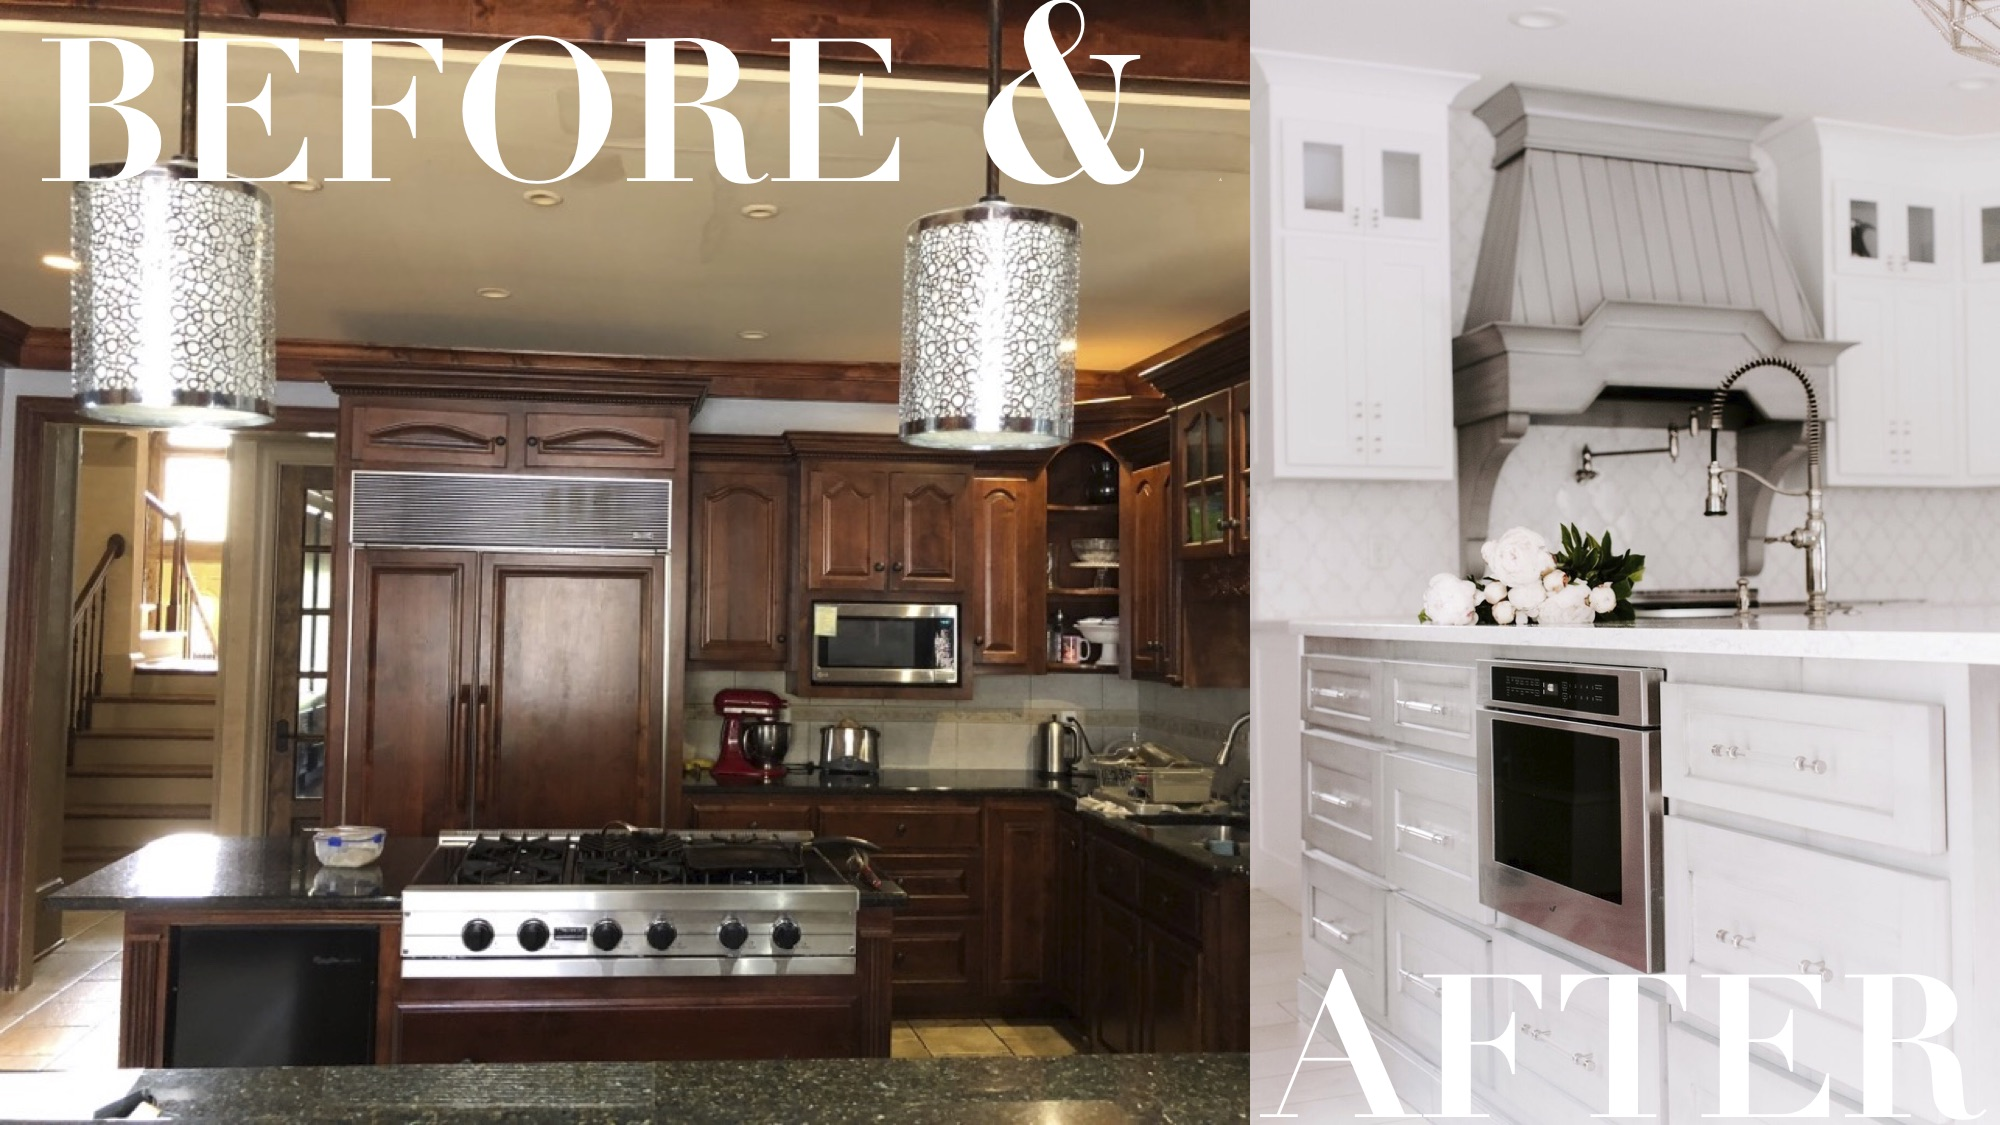 Before and After of the new hood elevation. Moving the fridge allowed us to take the range off of the island and create a nice center focal point on this back wall.